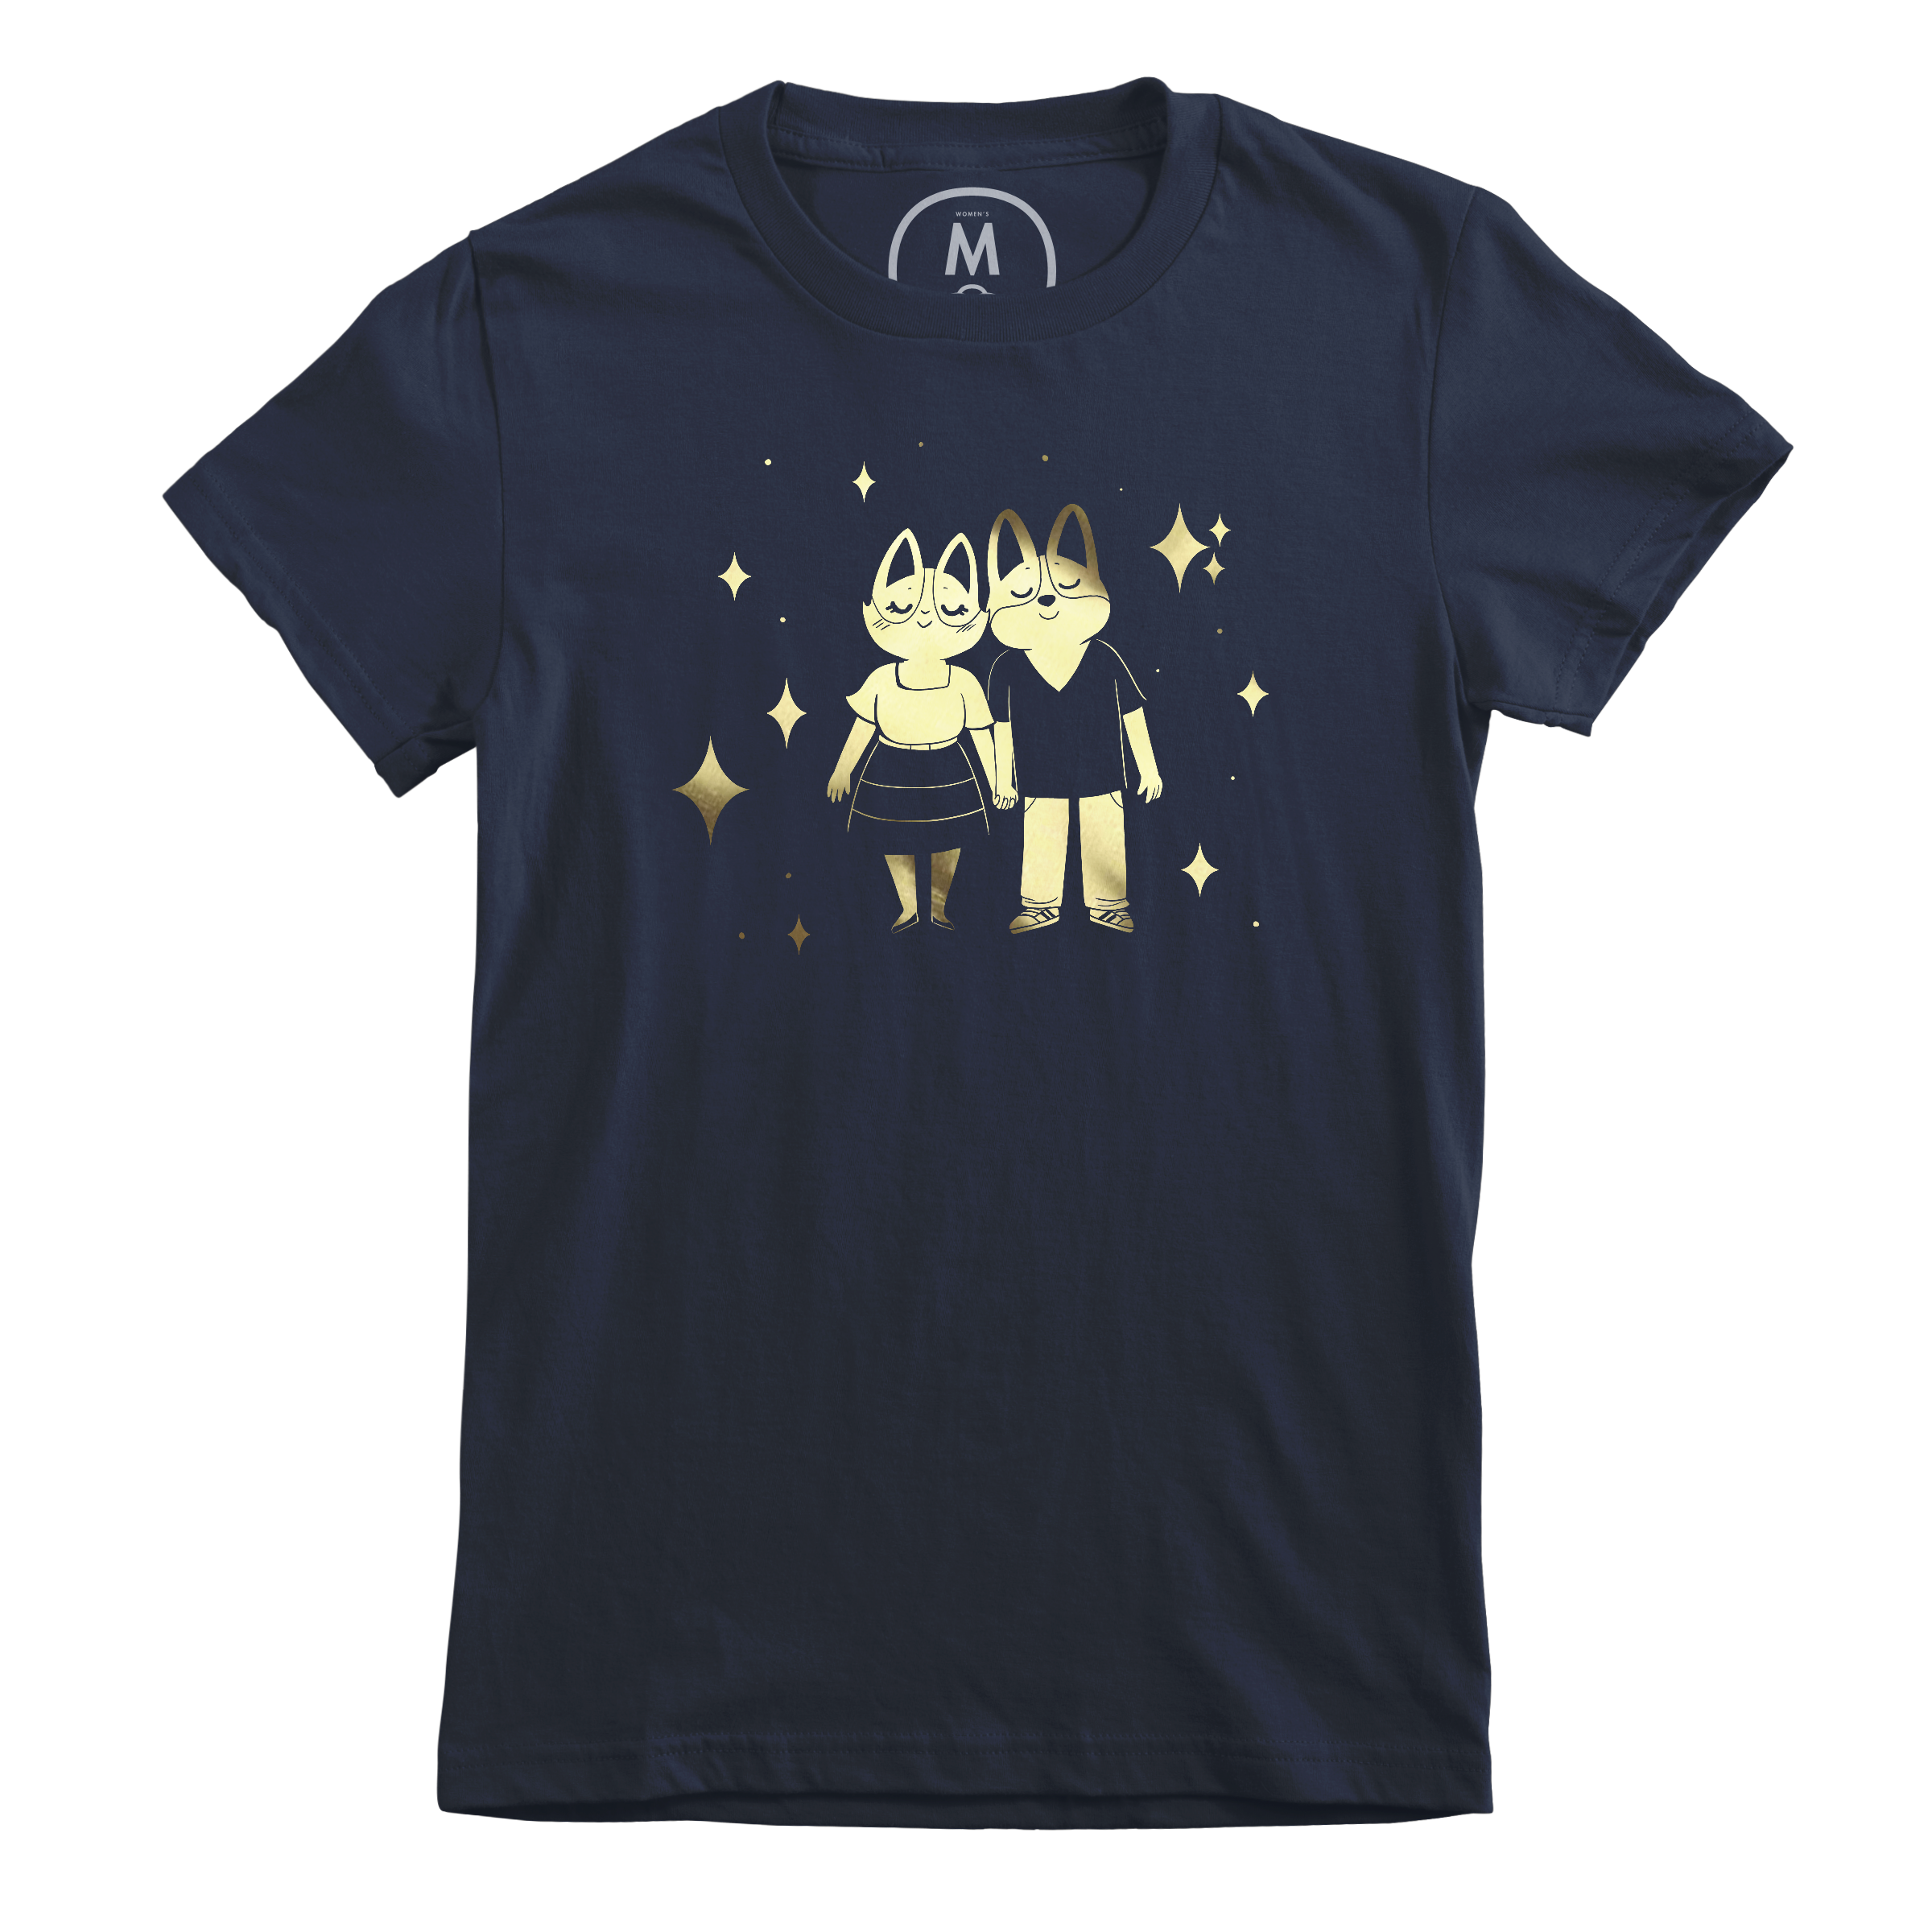 Together Midnight Navy (Women's)